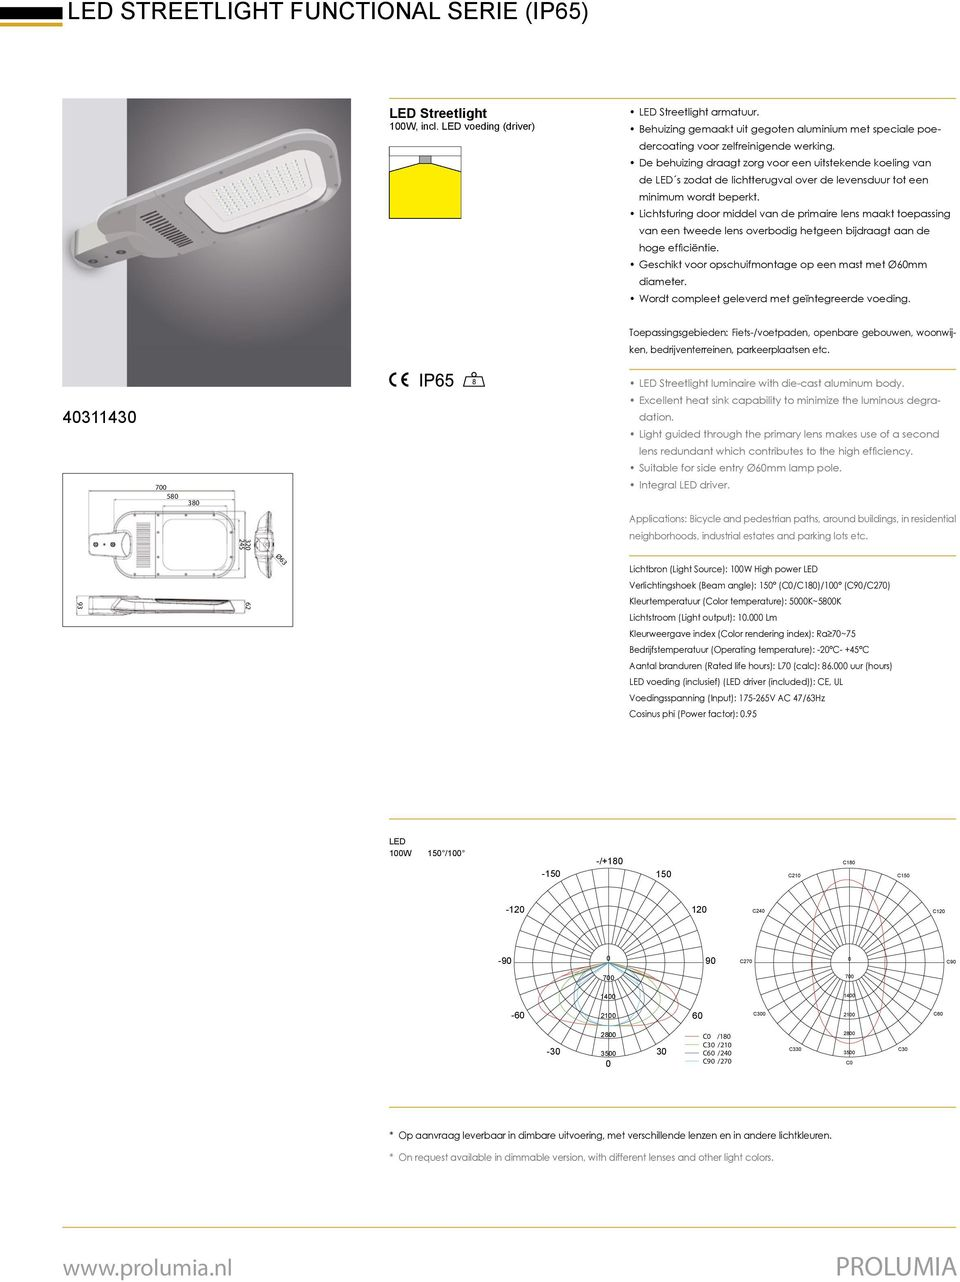 Suitable for side entry Ø6mm lamp pole. Integral driver.